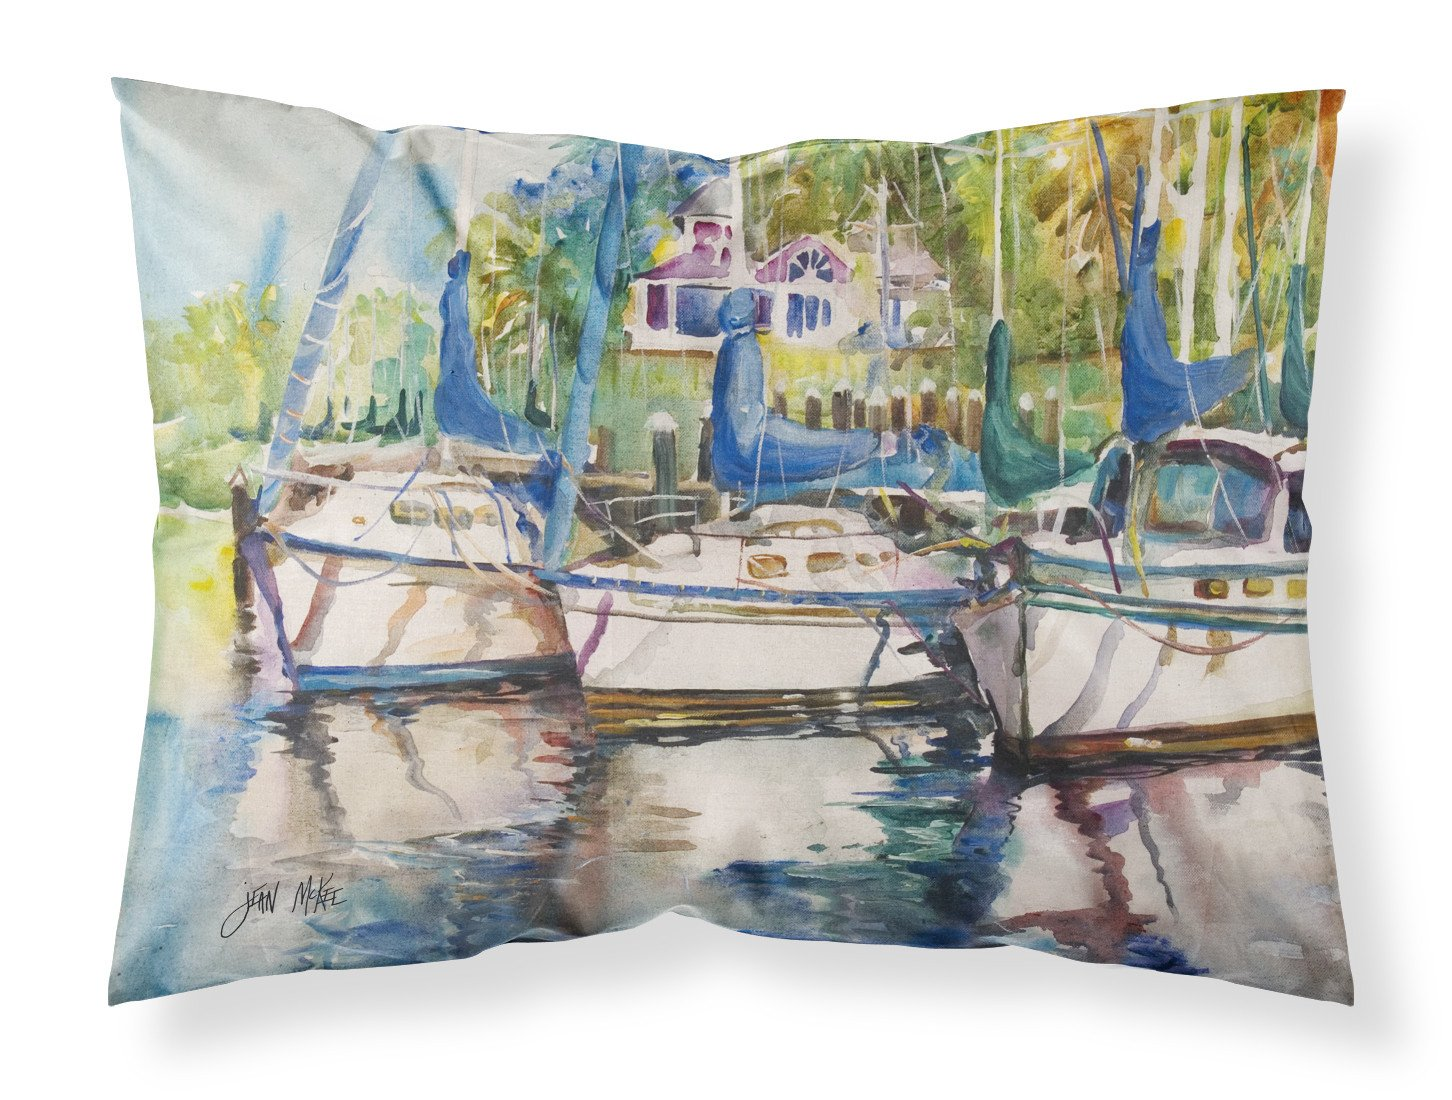 Safe Harbour Sailboats Fabric Standard Pillowcase JMK1071PILLOWCASE by Caroline's Treasures